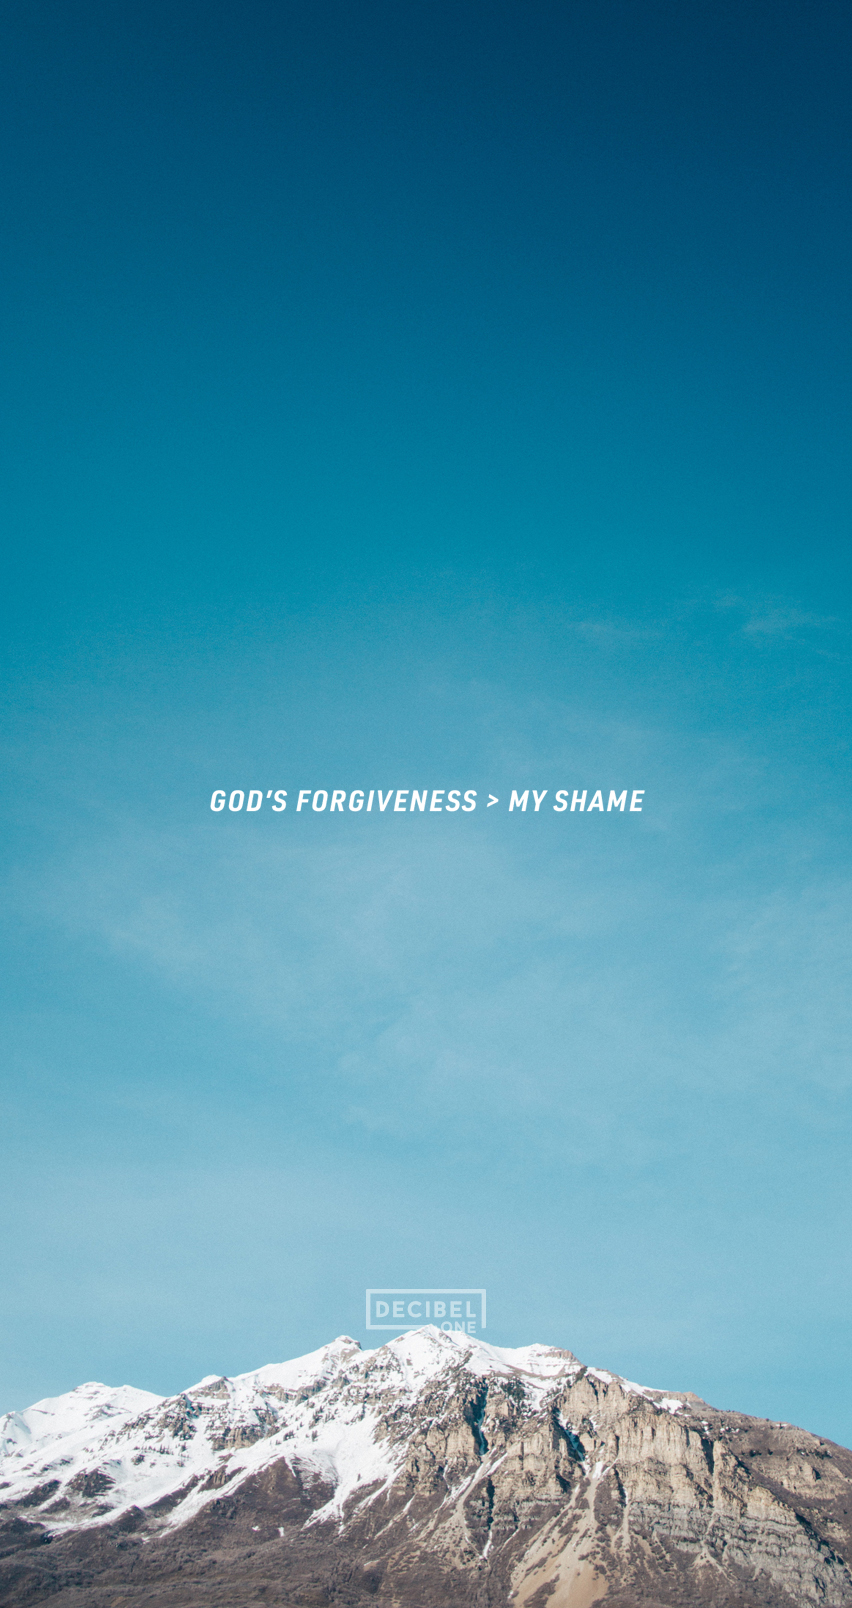 GOD'S FORGIVENESS > MY SHAME